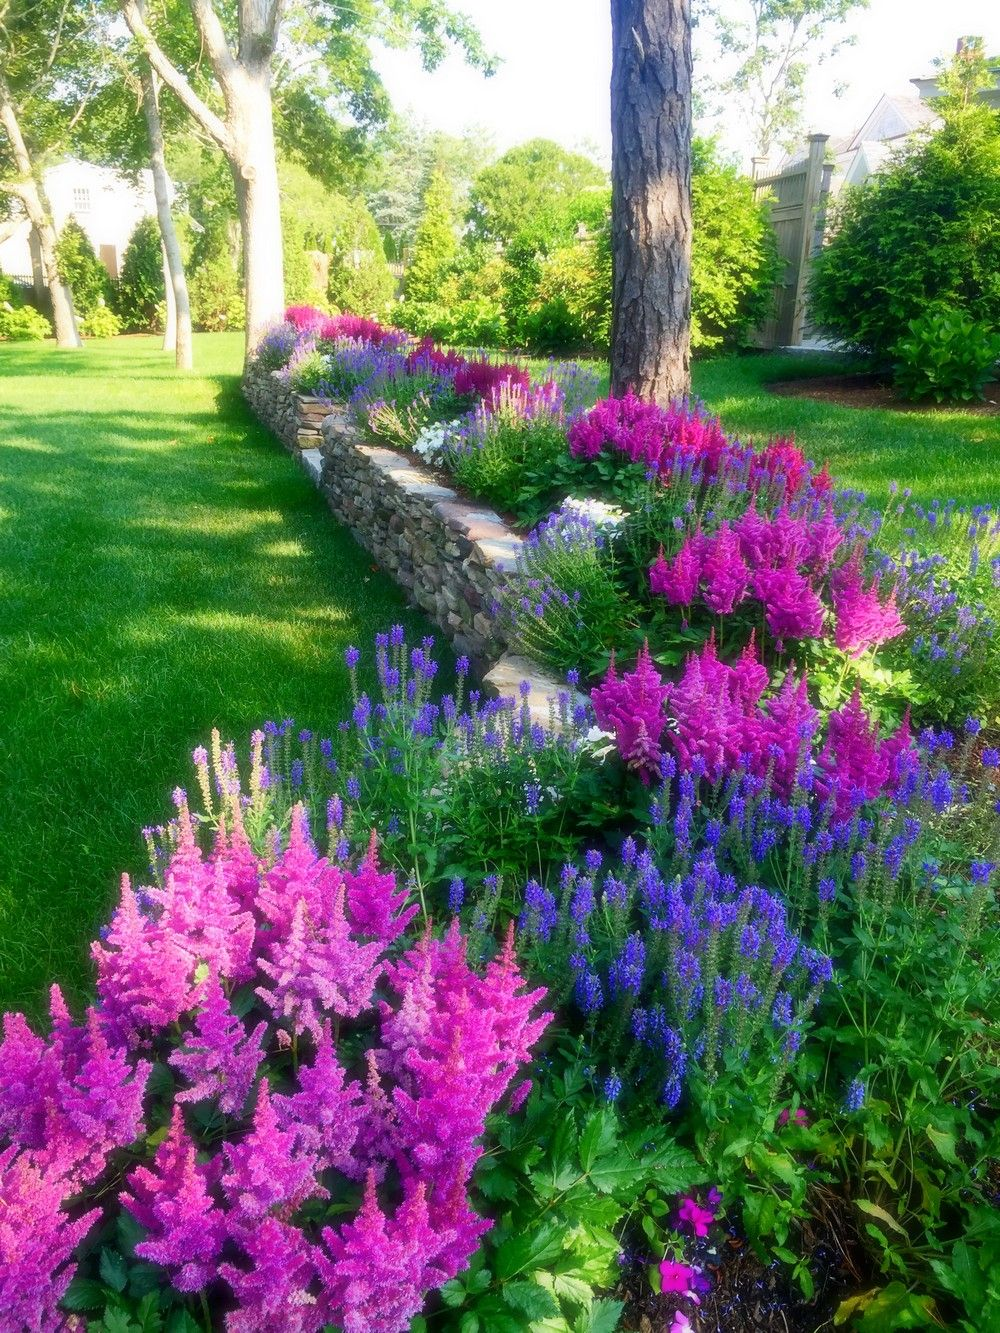 130 simple fresh and beautiful front yard landscaping ideas awesome 130 simple fresh and beautiful front yard landscaping ideas httpswartaku20170414simple fresh beautiful front yard landscaping ideas izmirmasajfo